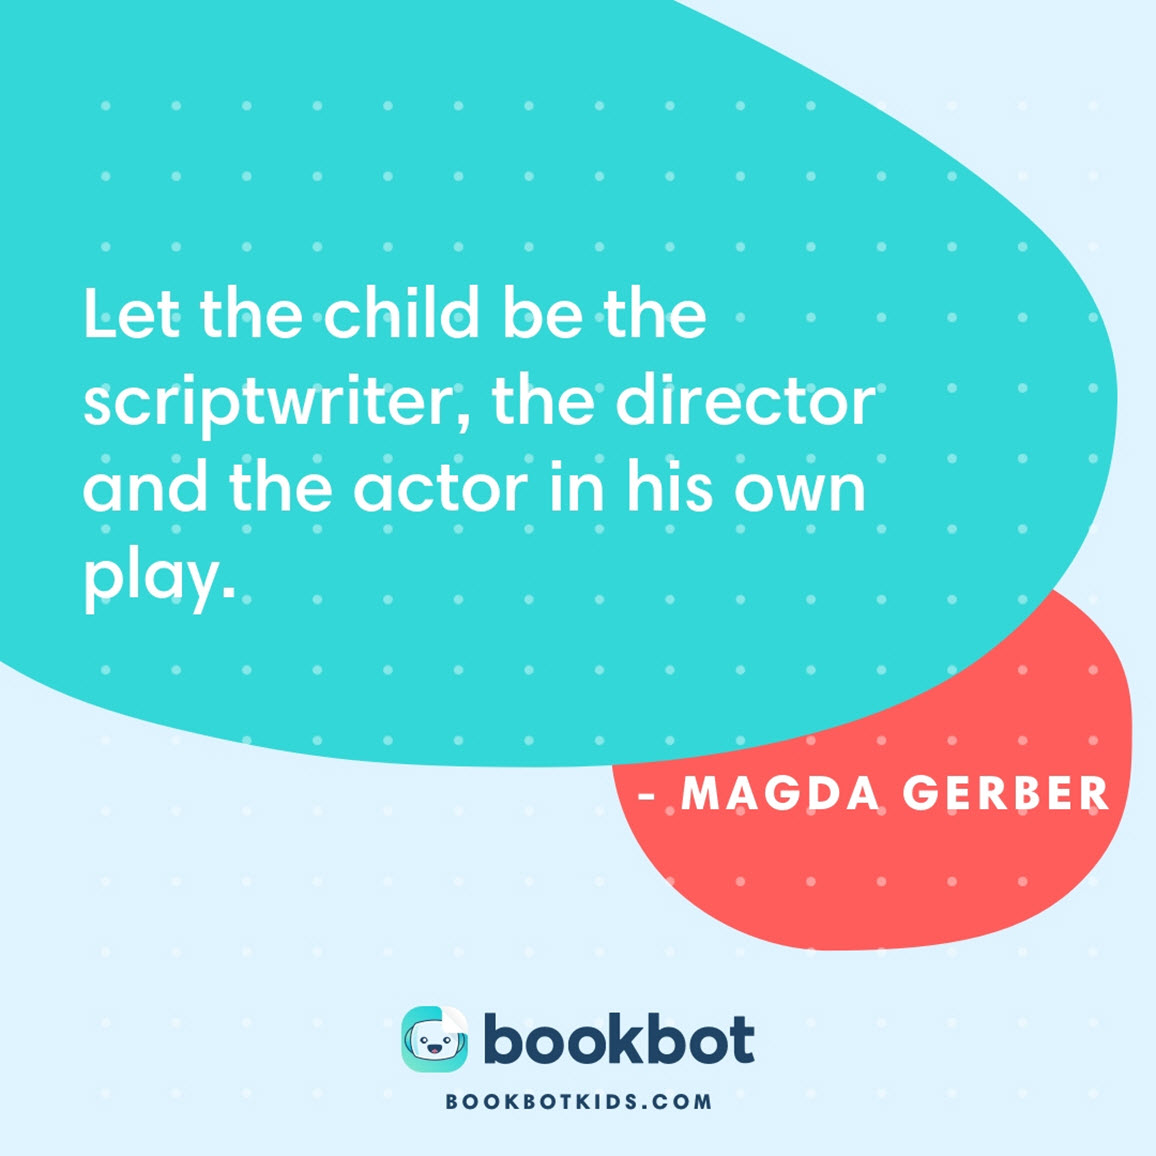 Let the child be the scriptwriter, the director and the actor in his own play. – Magda Gerber